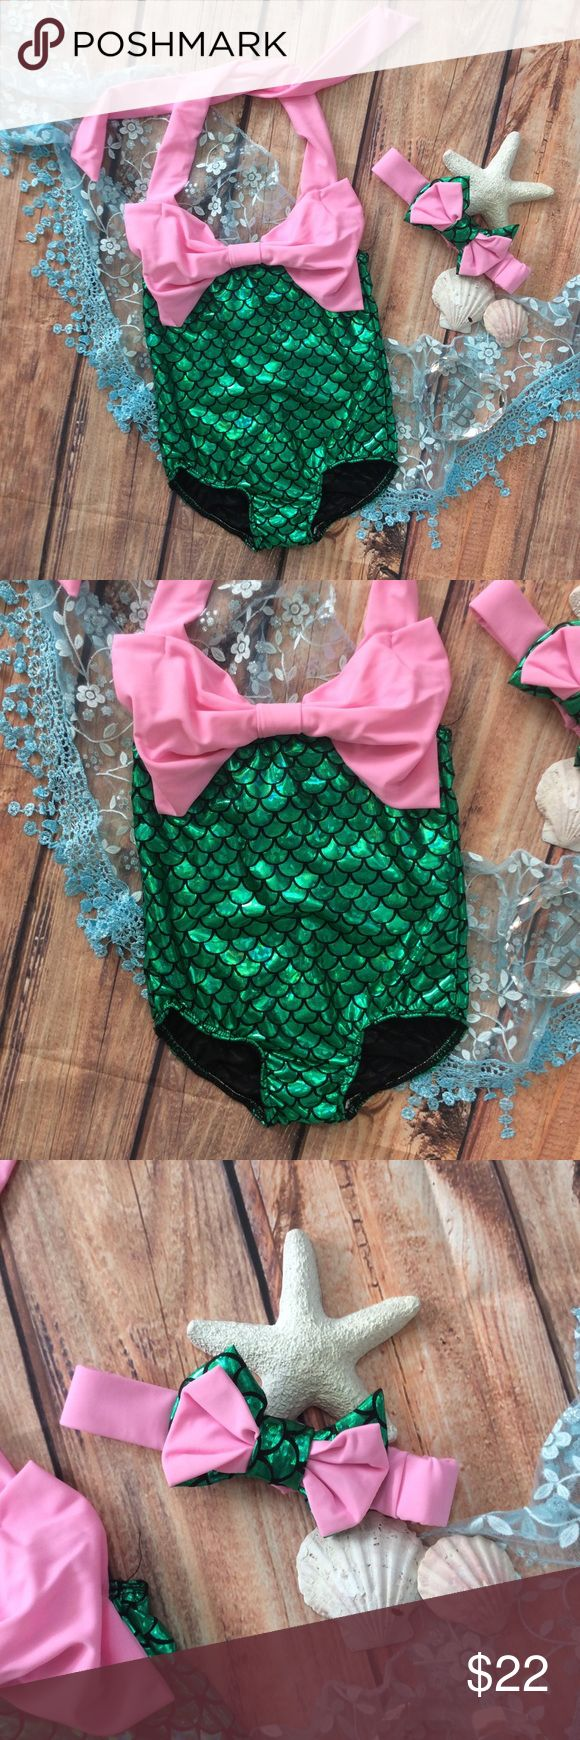 Girls Mermaid Swimsuit with Swim headband Adorable one piece Swimsuit mermaid style with halter style top. Pink big bow in front and green holographic scale pattern design. Matching Swim headband bow included. Swim One Piece